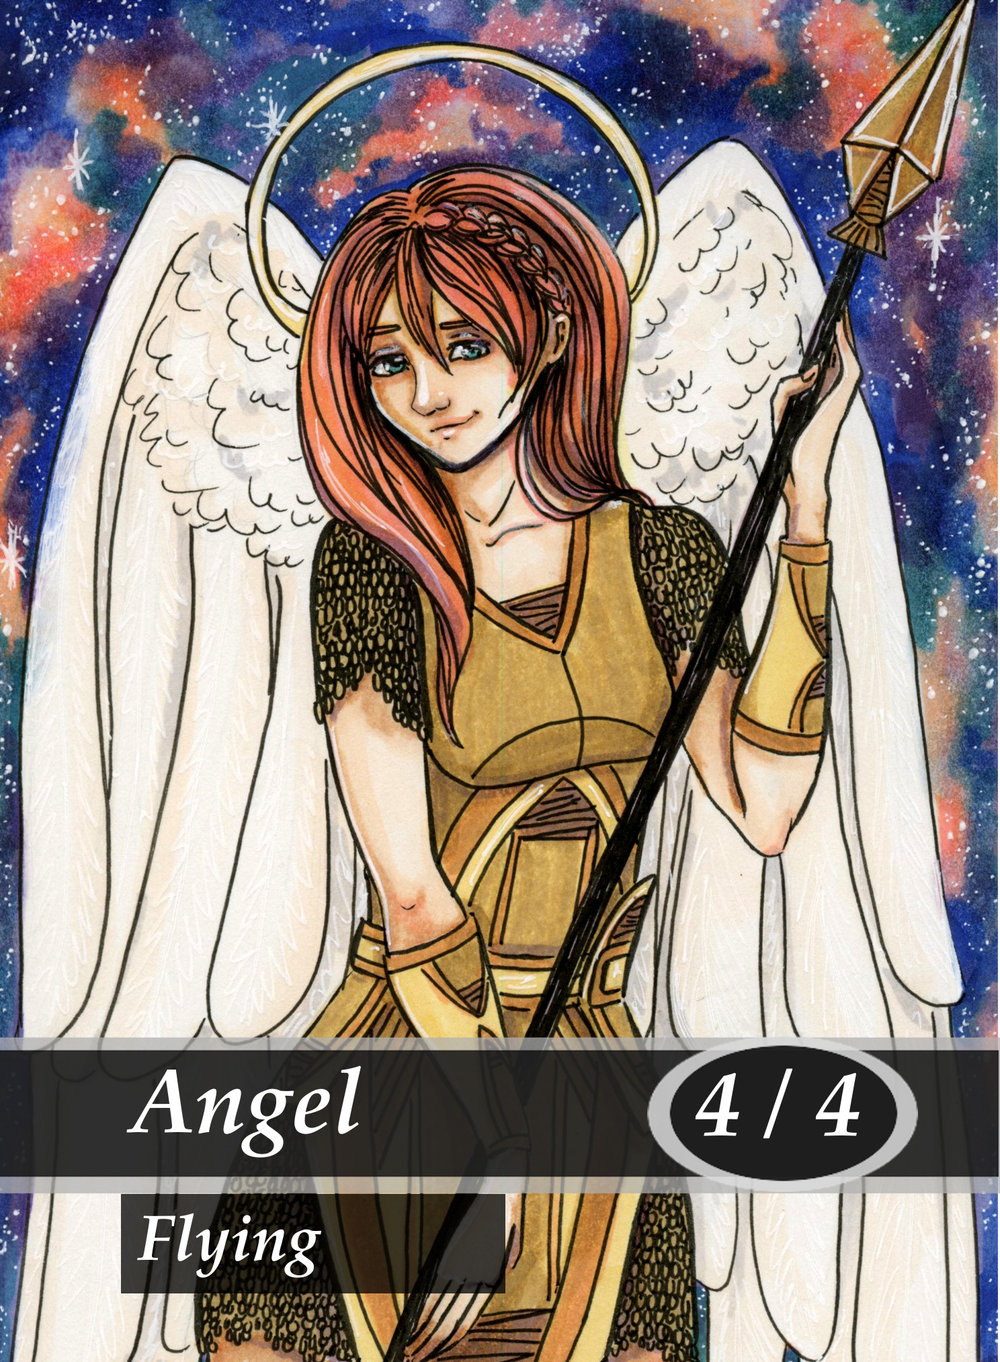 Angel Magic the Gathering MTG Token by Anna Van Skike with AnnaVSart